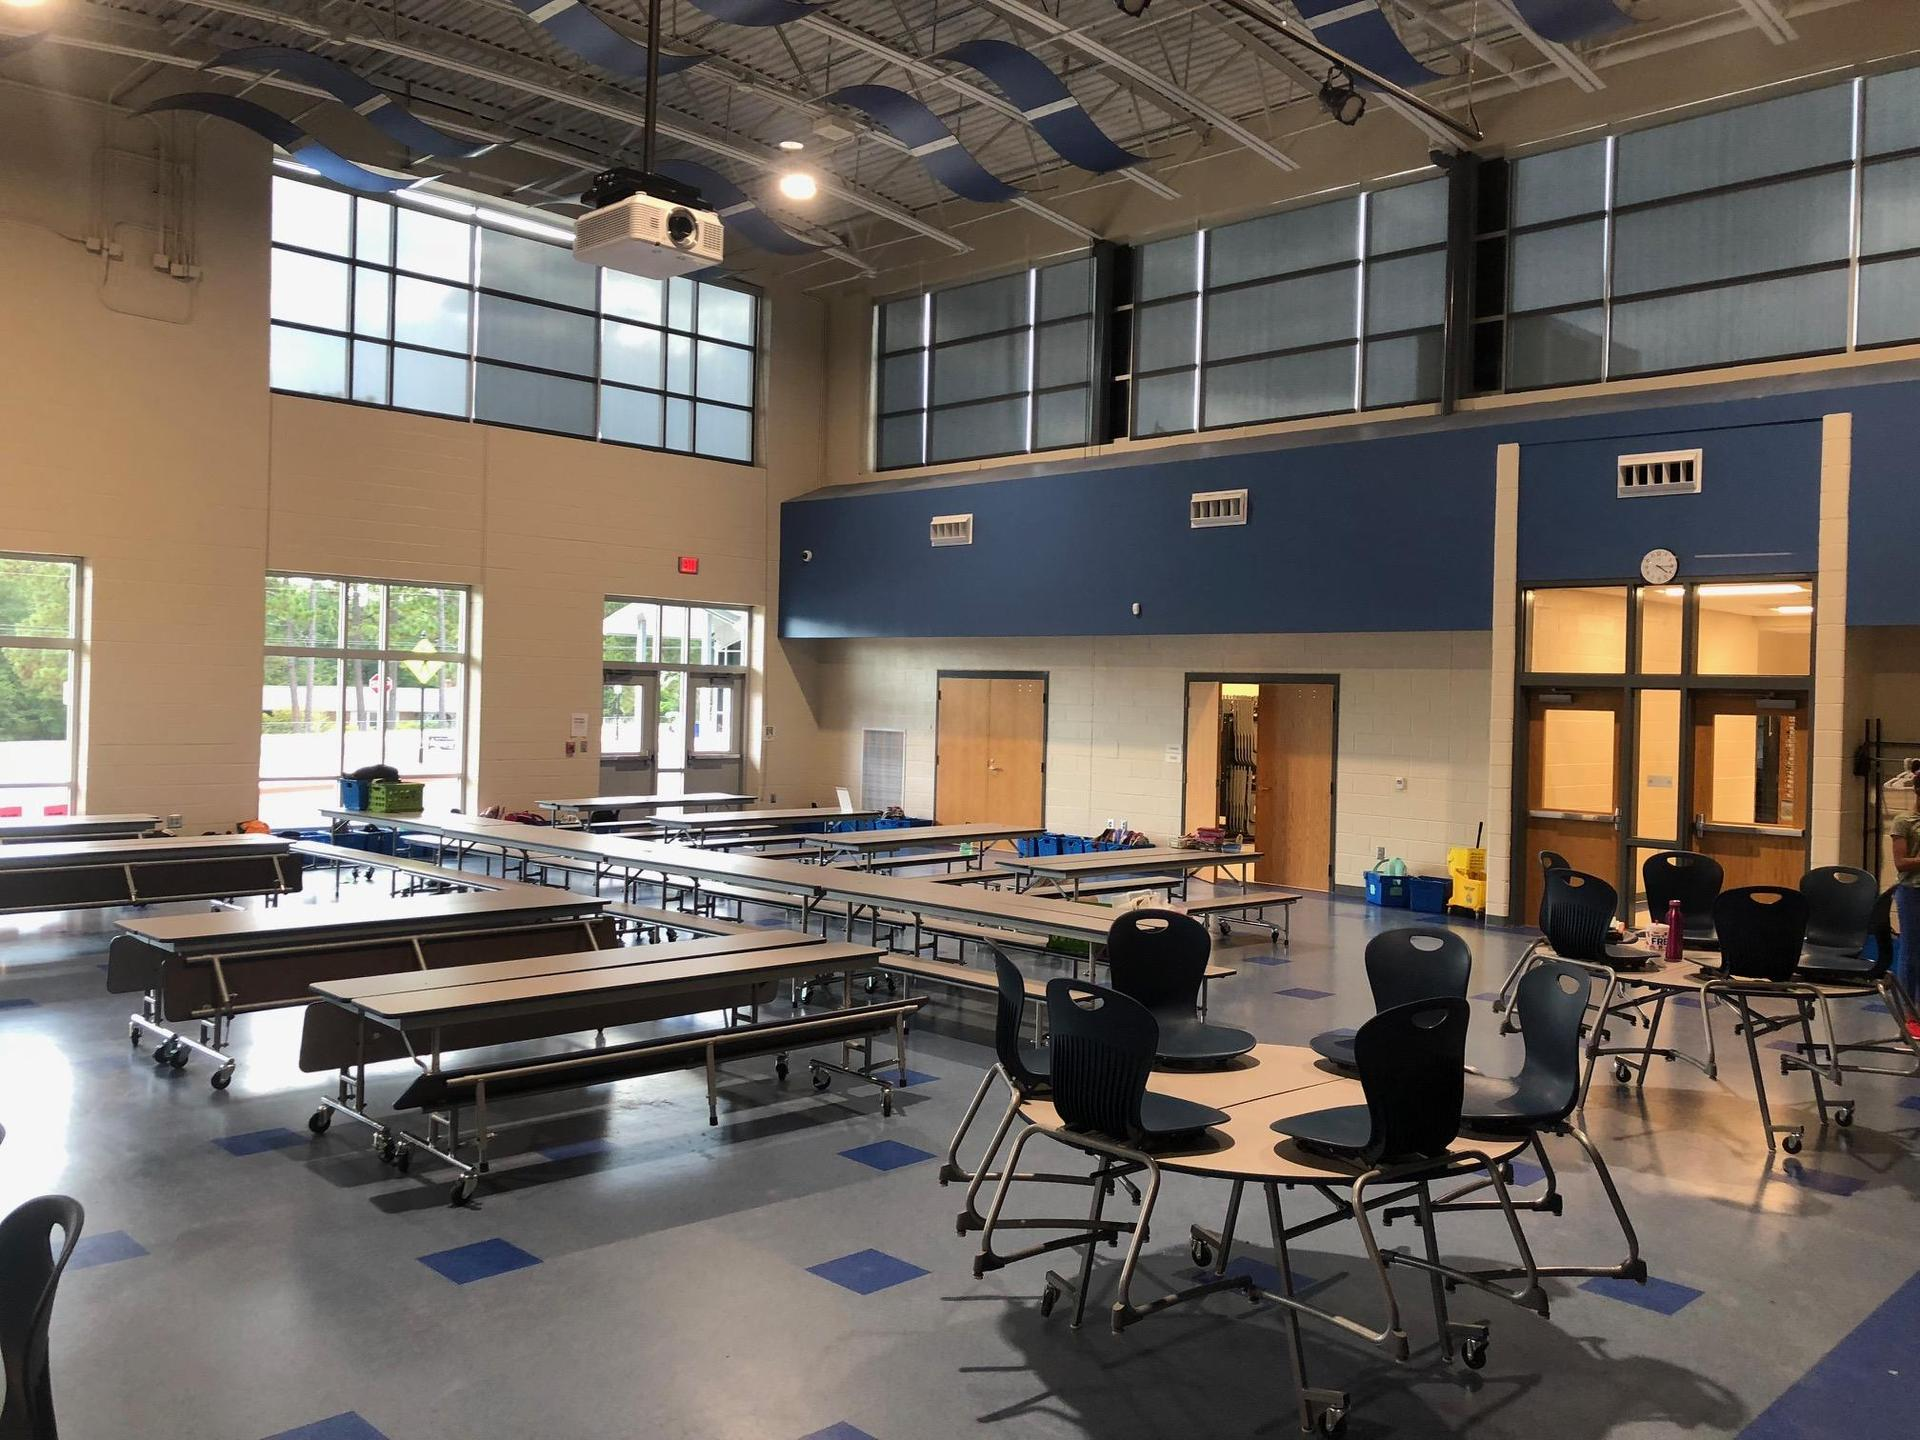 New cafeteria with new tables and seating at Springdale Elementary